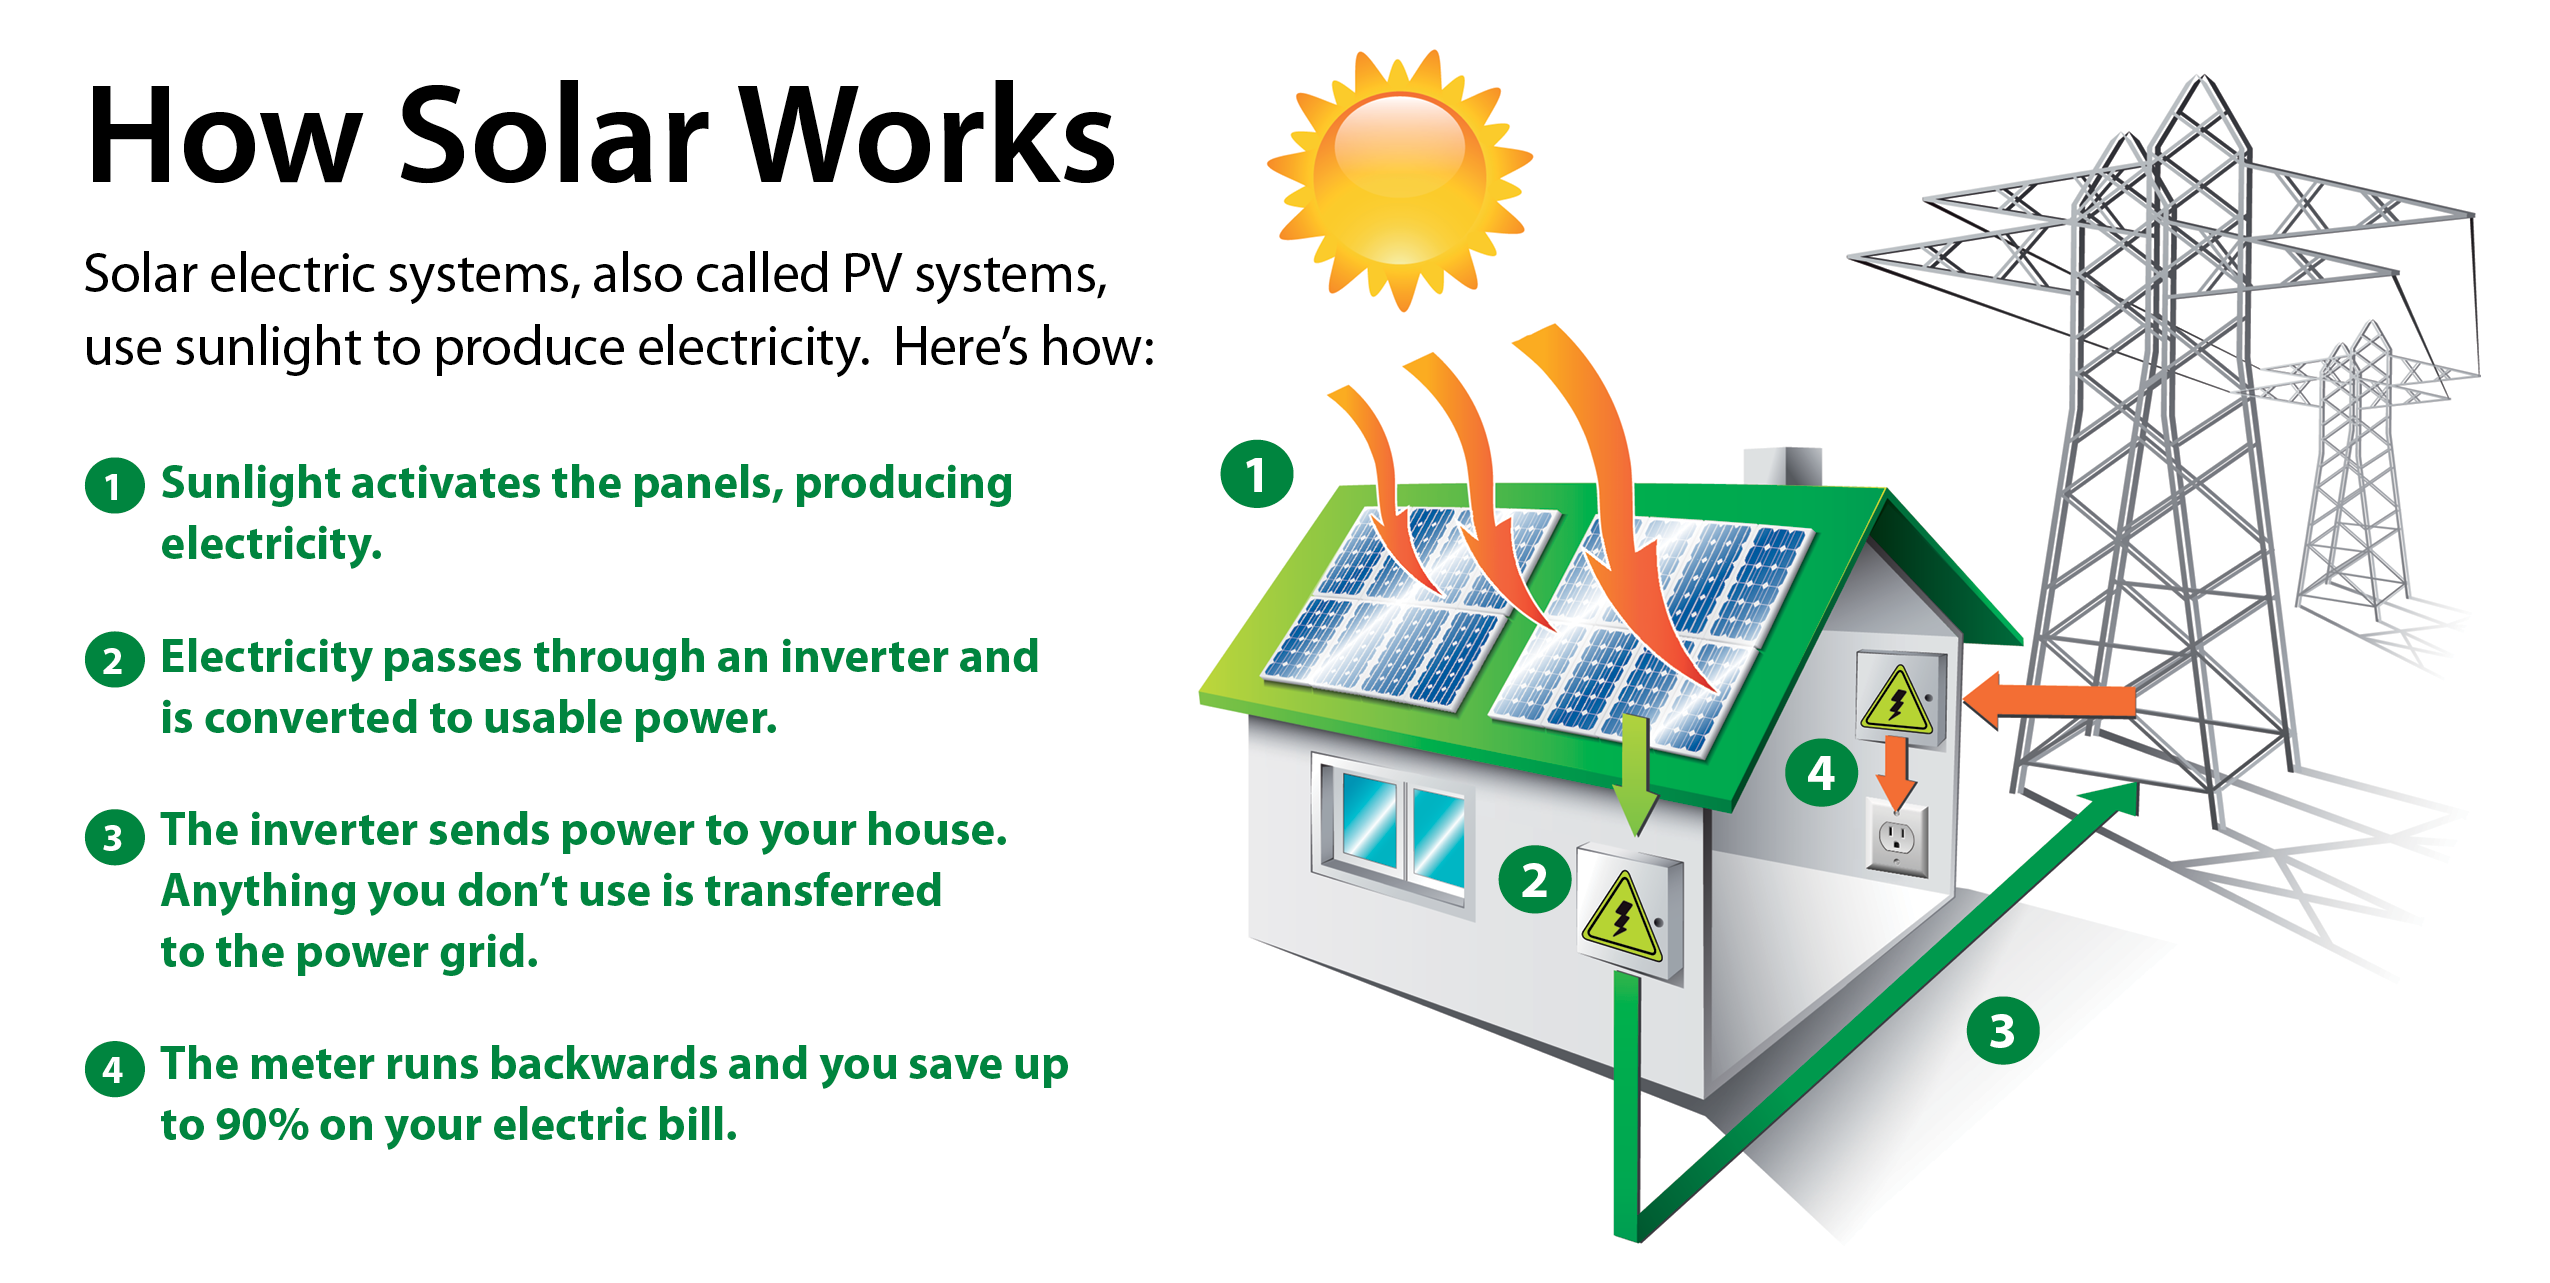 Installing a Solar Power System for Your Home